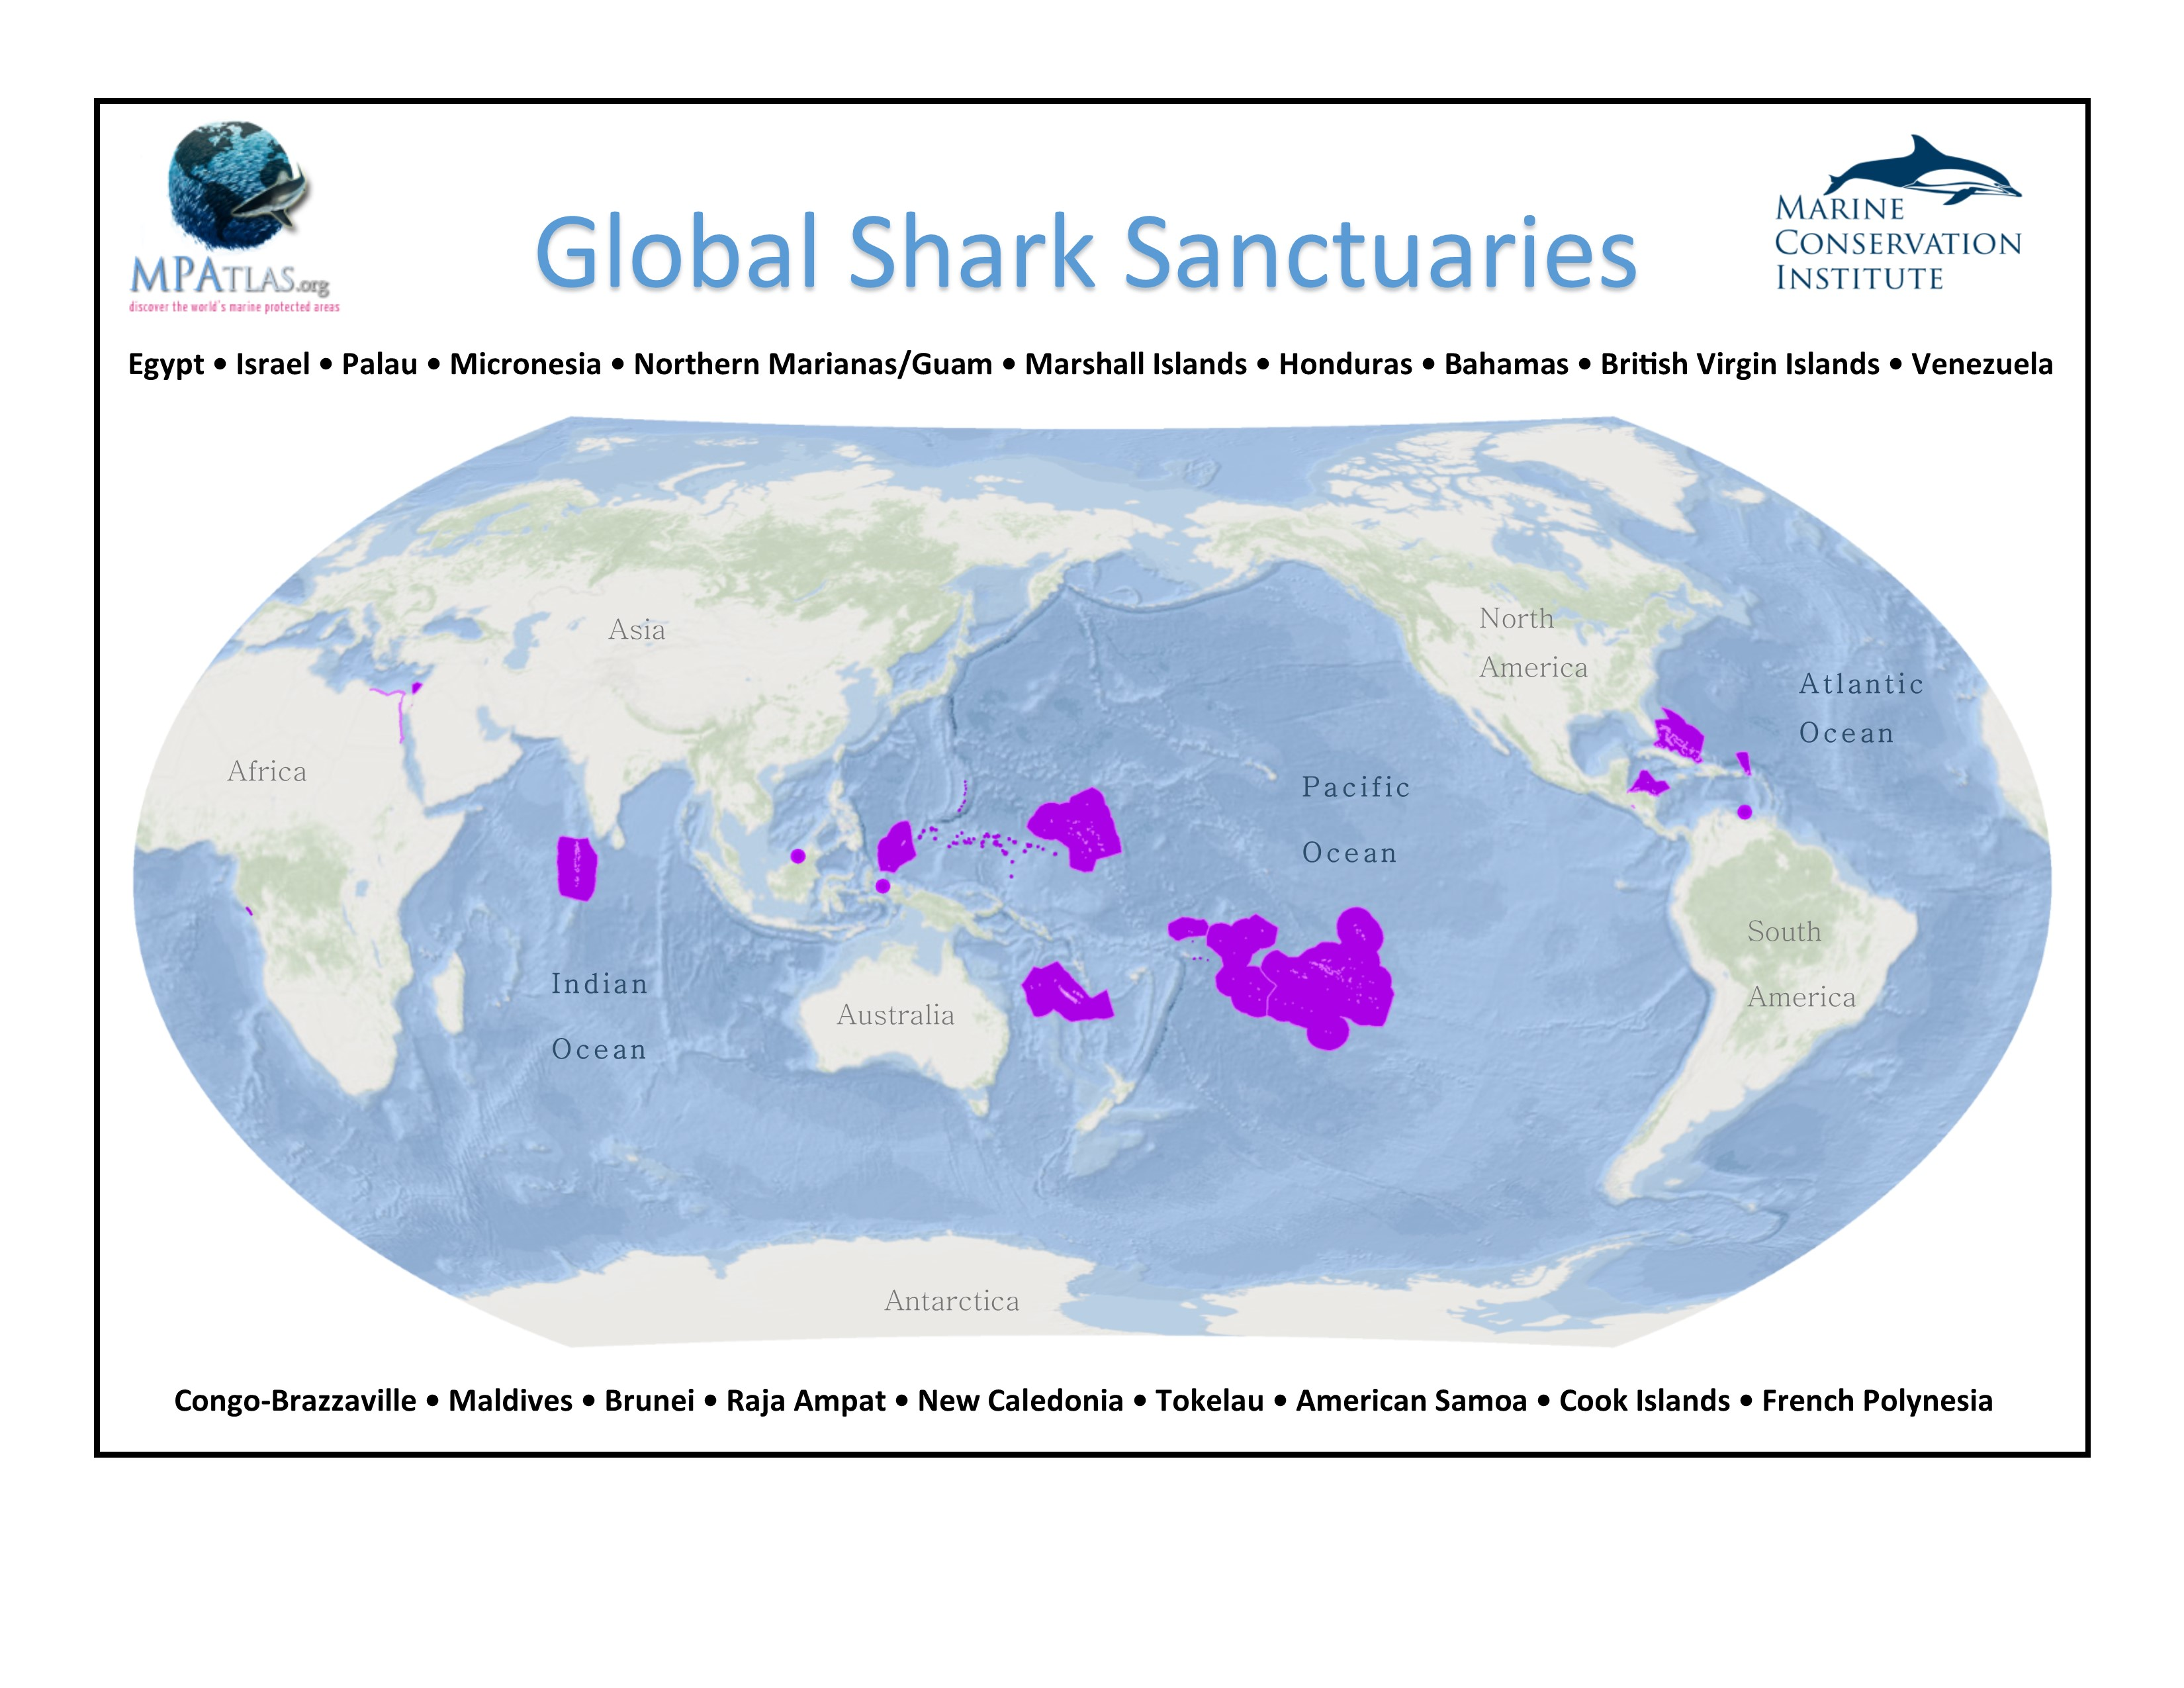 Shark Sanctuaries: Are They Enough to Save Sharks?